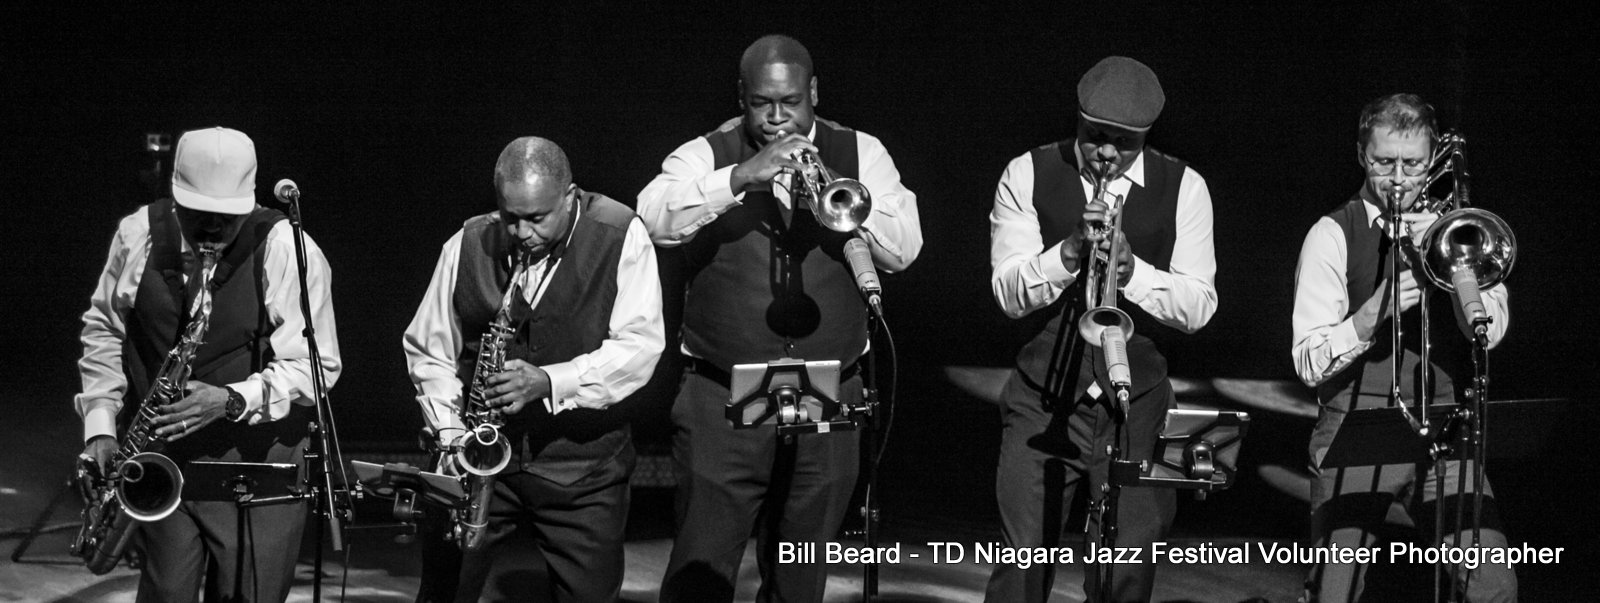 JAZZ in the CITY - Friday, July 28th, 2017 - CHOPS and SOUL - FirstOntario Performing Arts Centre. Photo: Bill Beard